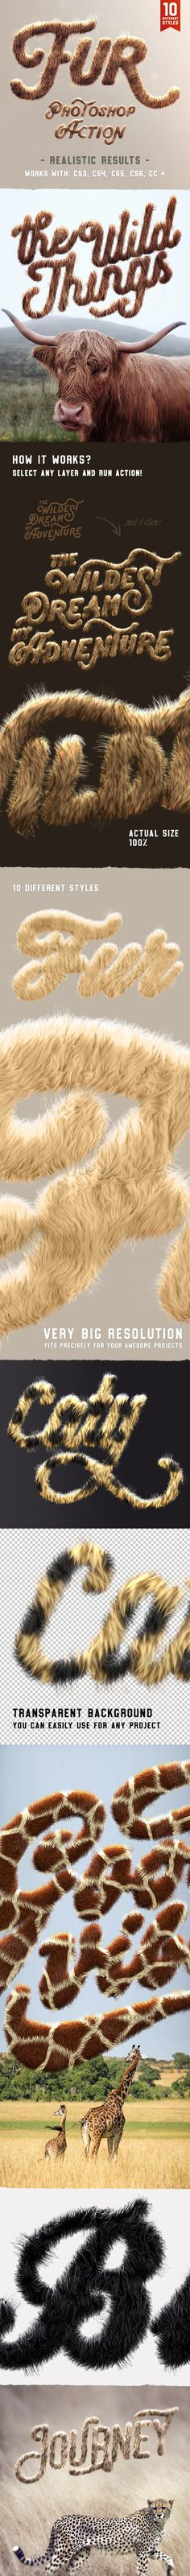 Buy Realistic Fur Photoshop Actions by HyperPix on GraphicRiver. Fur Photoshop Action It's furry. Online Graphic Design, Graphic Design Tutorials, Design Templates, Photoshop Brushes, Photoshop Actions, Adobe Photoshop, Photoshop Illustrator, Photoshop Tutorial, Media Design